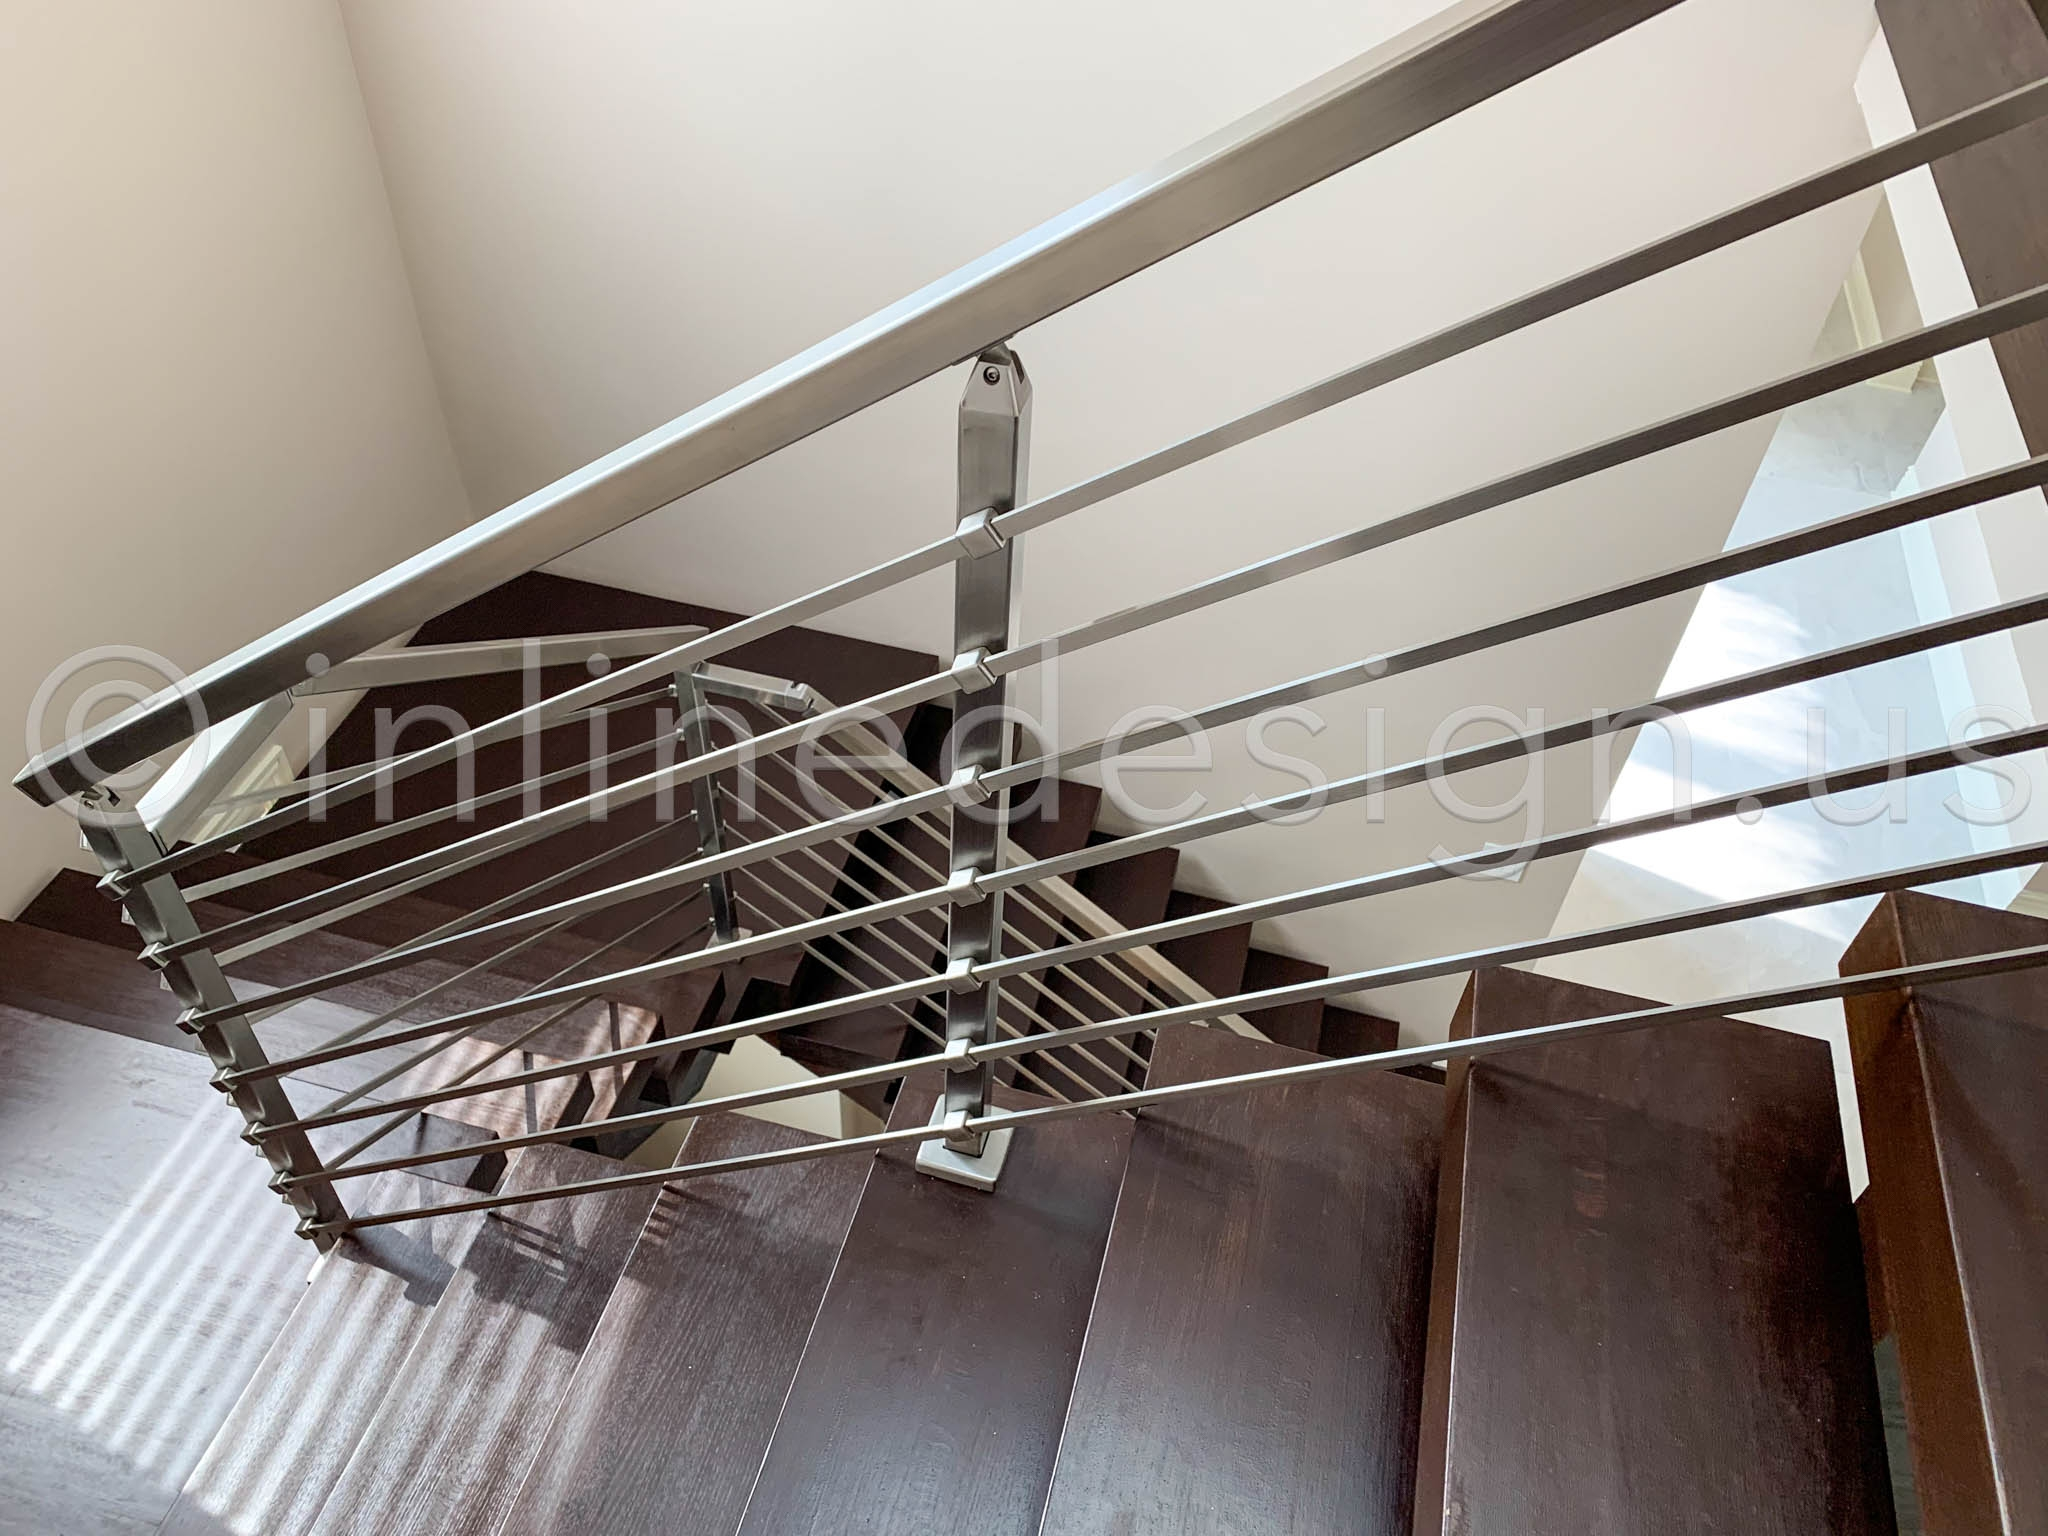 Modern Cable Railing On Mid Century Modern Architecture | Modern Cable Stair Railing | Stainless Steel Stair | Railing Systems | Glass Railing | Entry Foyer | Staircase Remodel